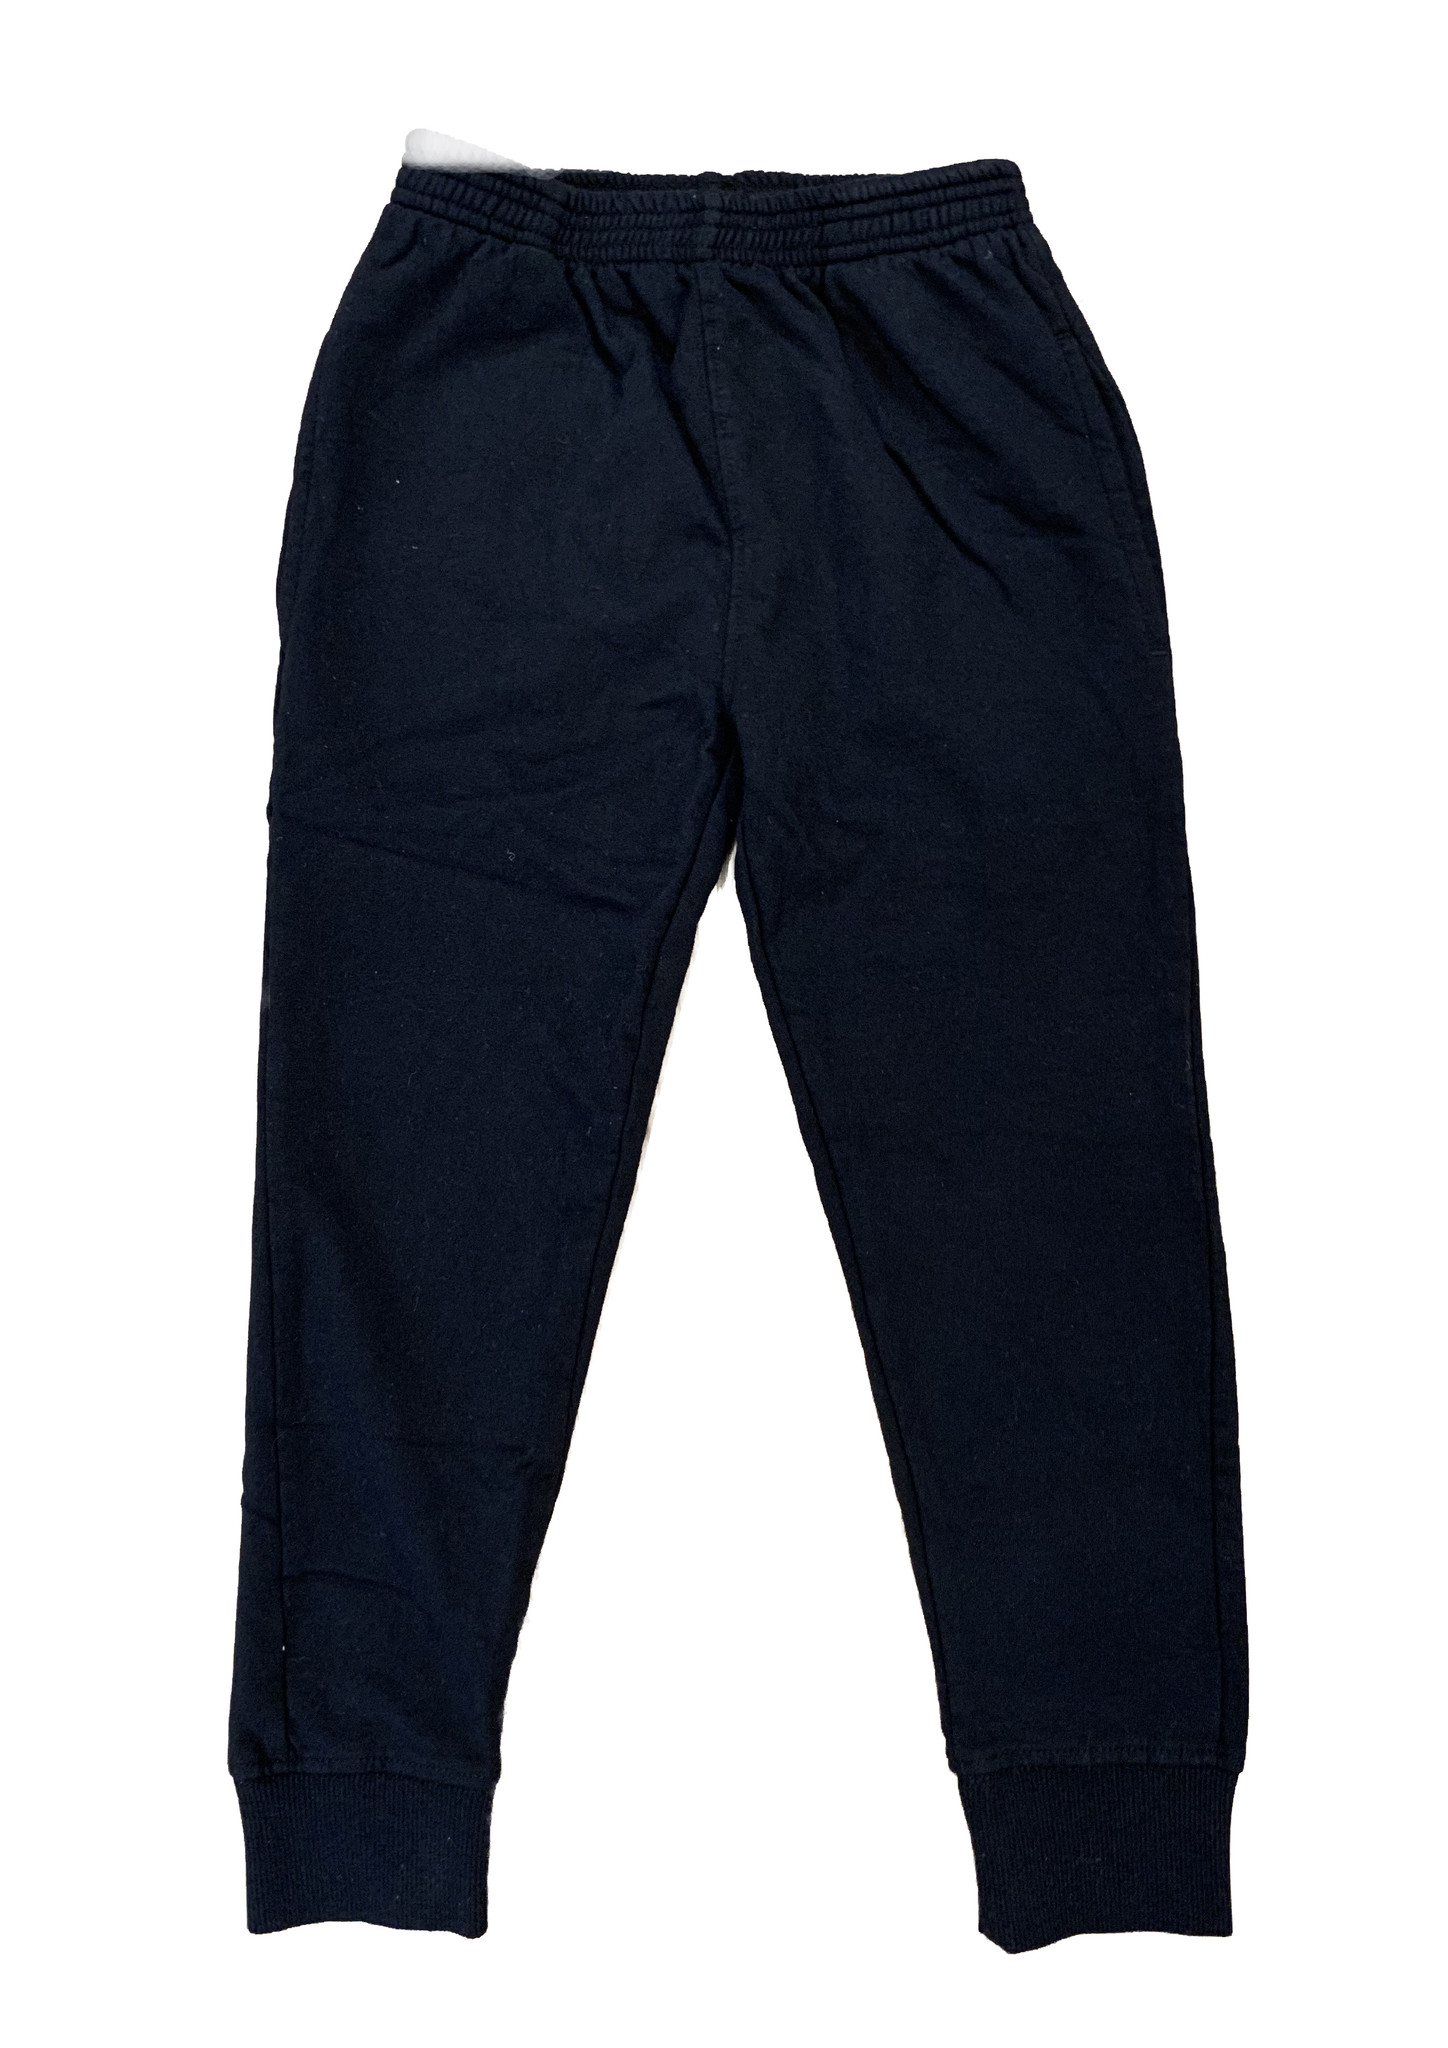 Wes & Willy Solid Black Sweatpants